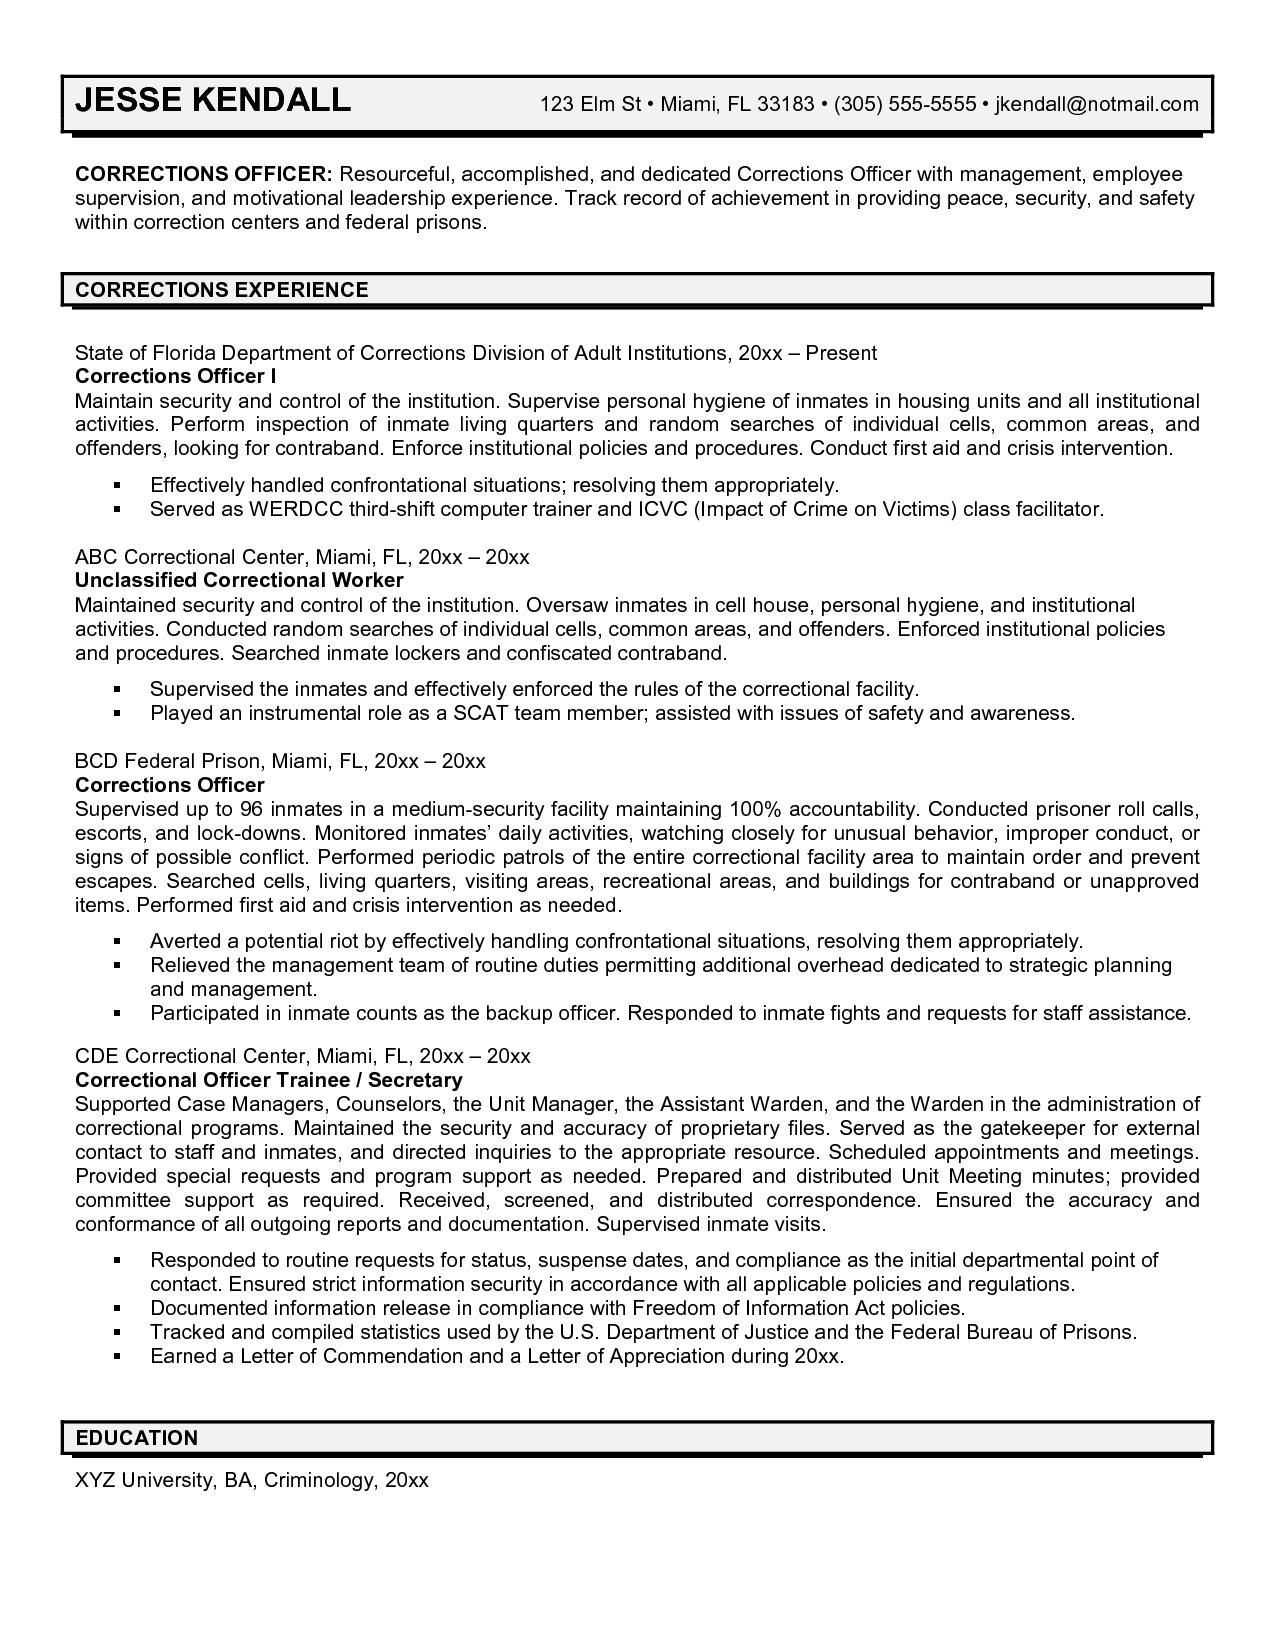 Sample Correctional Officer Resumes Pin By Resumejob On Resume Job Examples